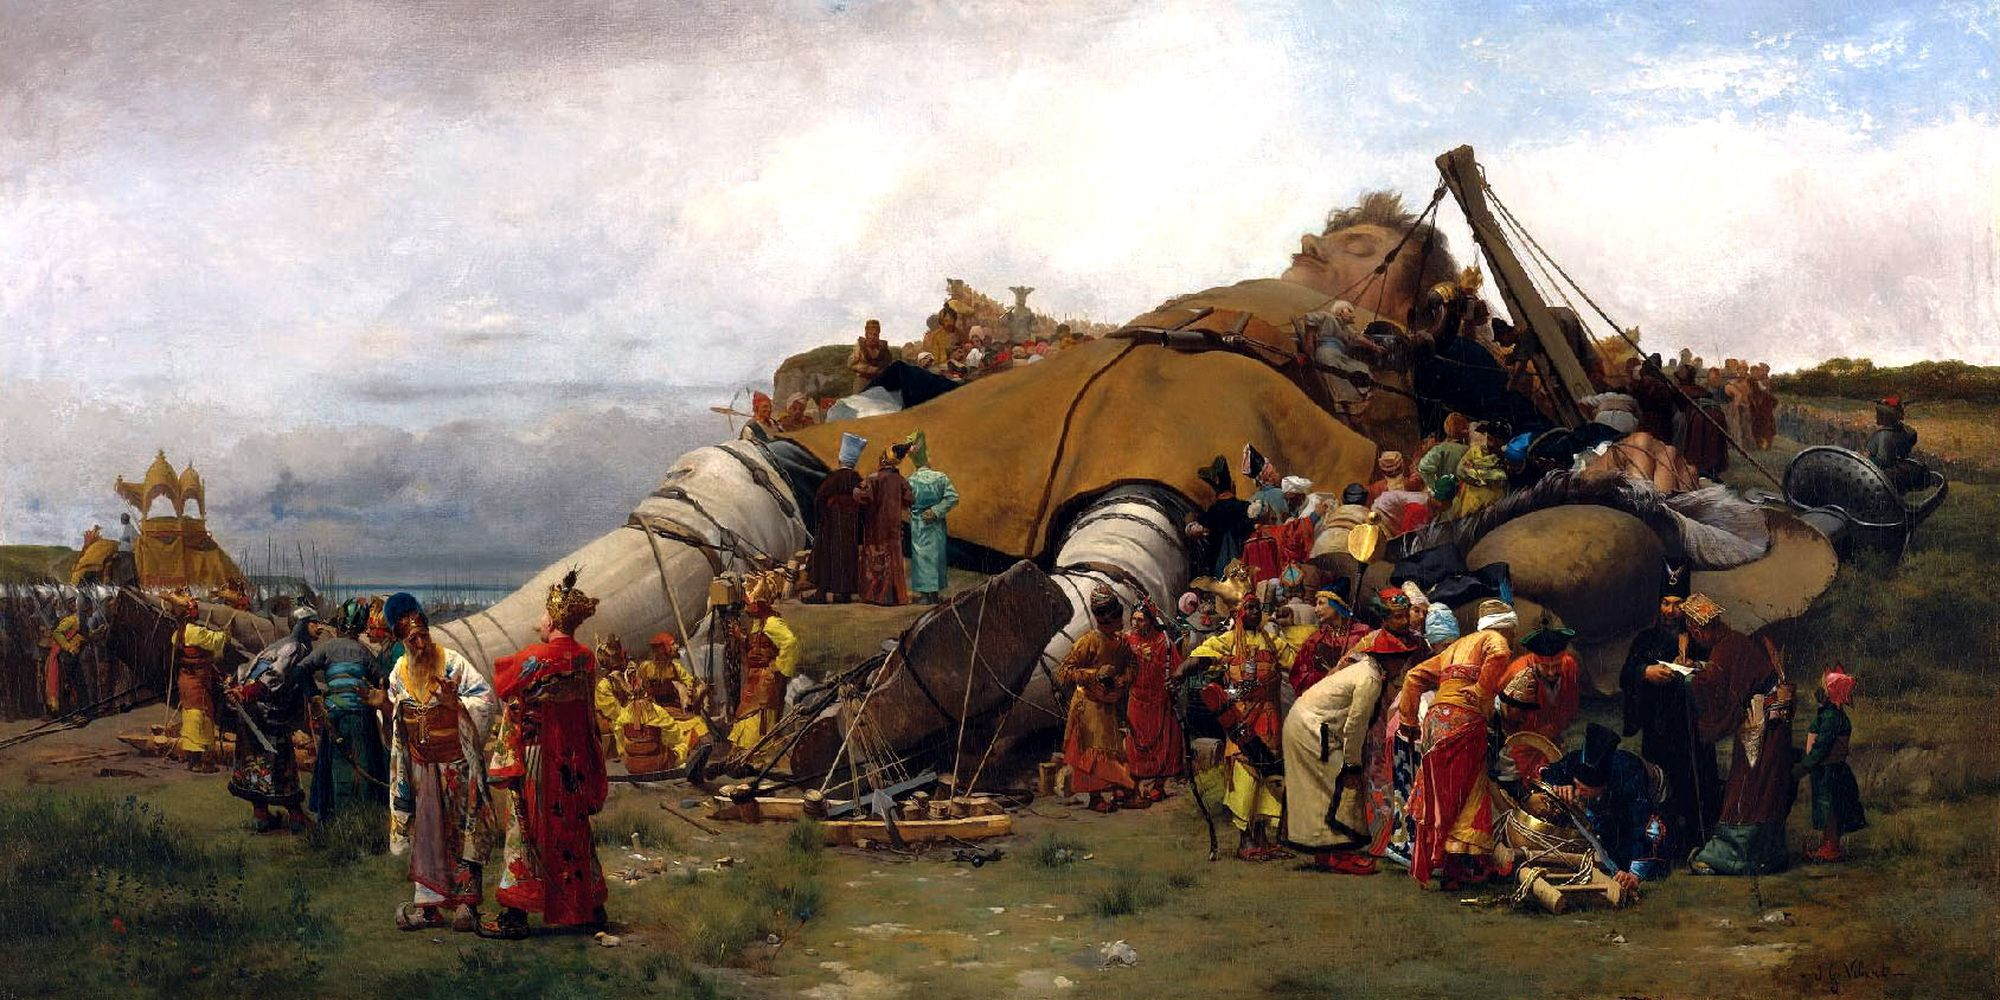 """I can imagine seeing this for the first time in 1870 as a teenager. It would've been as mind-blowing as that opening scene in Star Wars with the Star Destroyer rumbling overhead. This is the equal to any movie special effects today. ~~ """"Gulliver and the Lilliputians"""" by Jehan-Georges Vibert, 1870."""